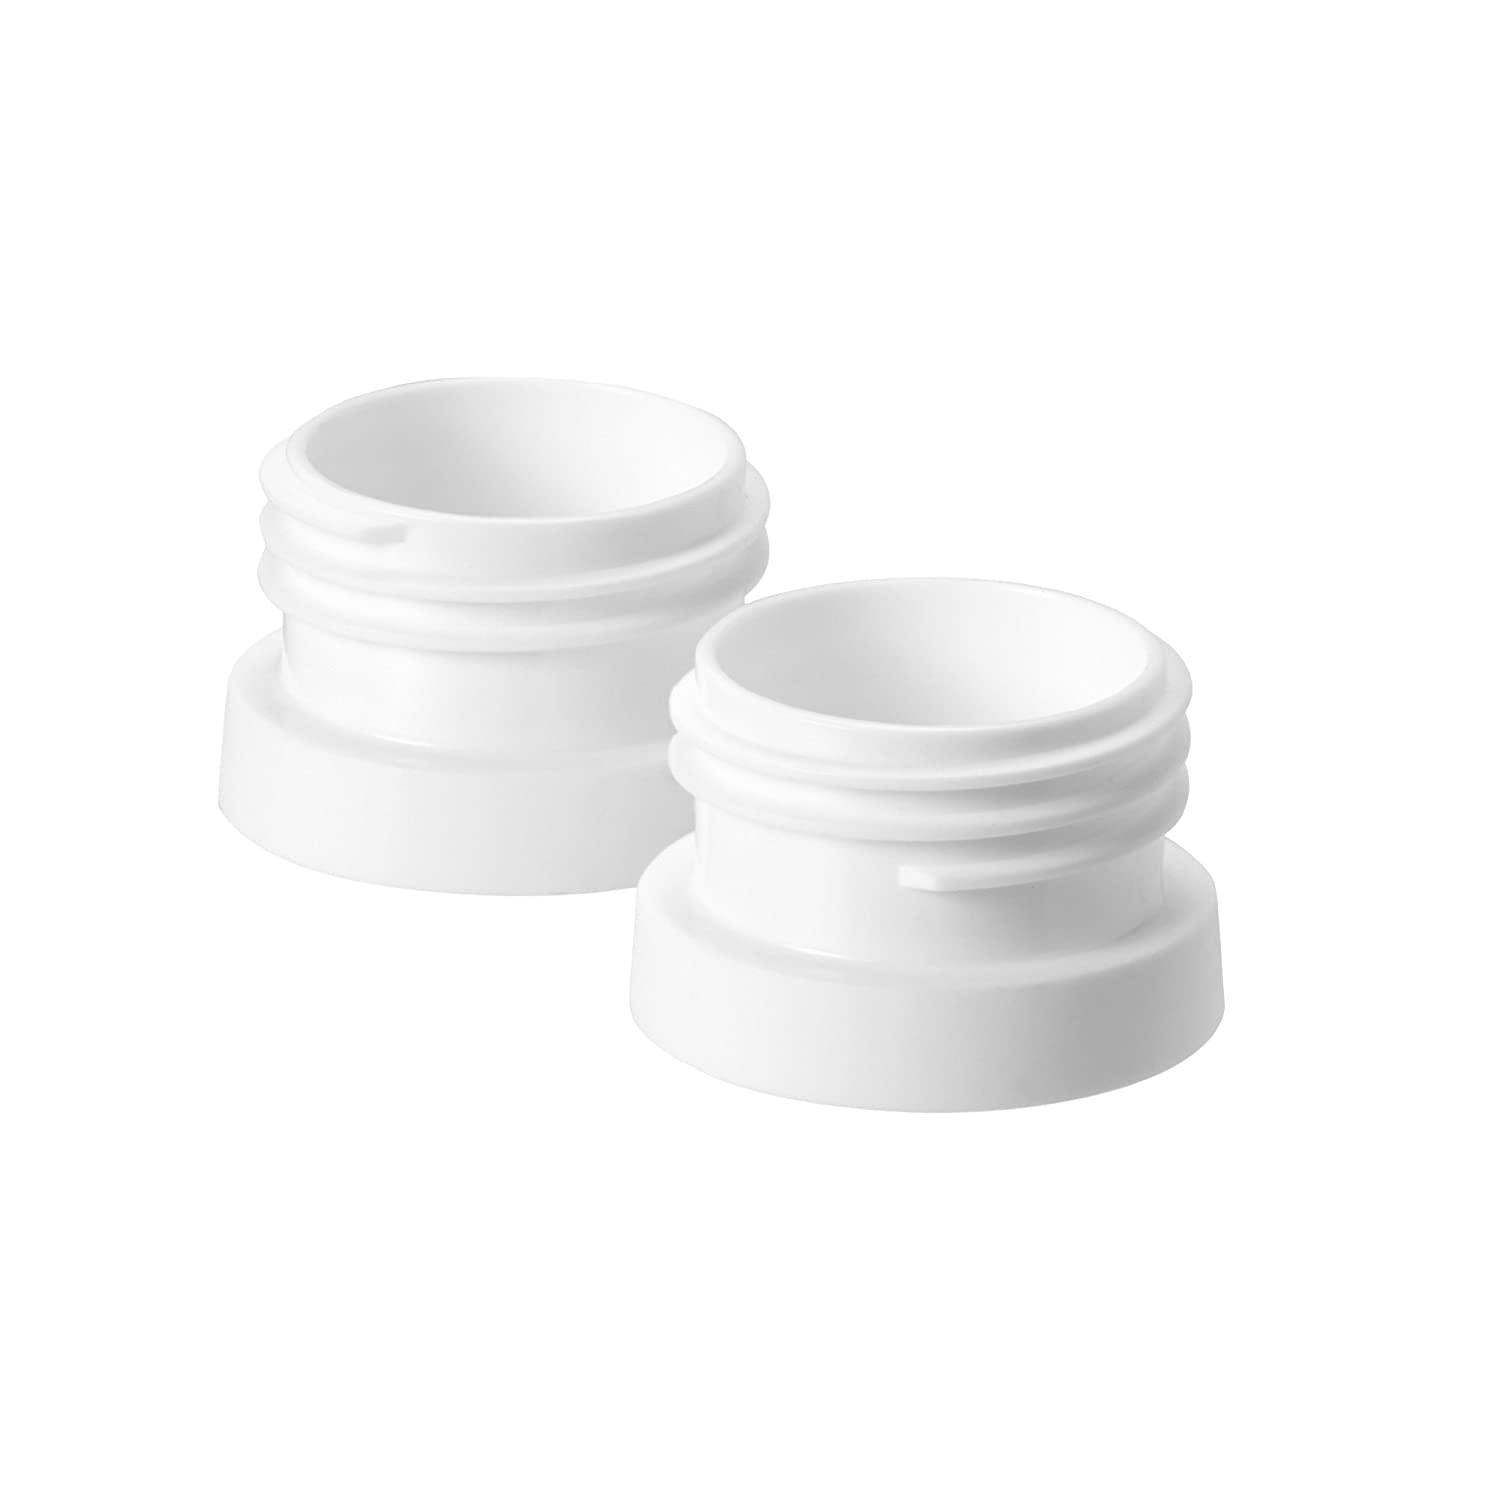 Tommee Tippee Pump and Go Double Electric Breast Pump Adapter Set, White 522626